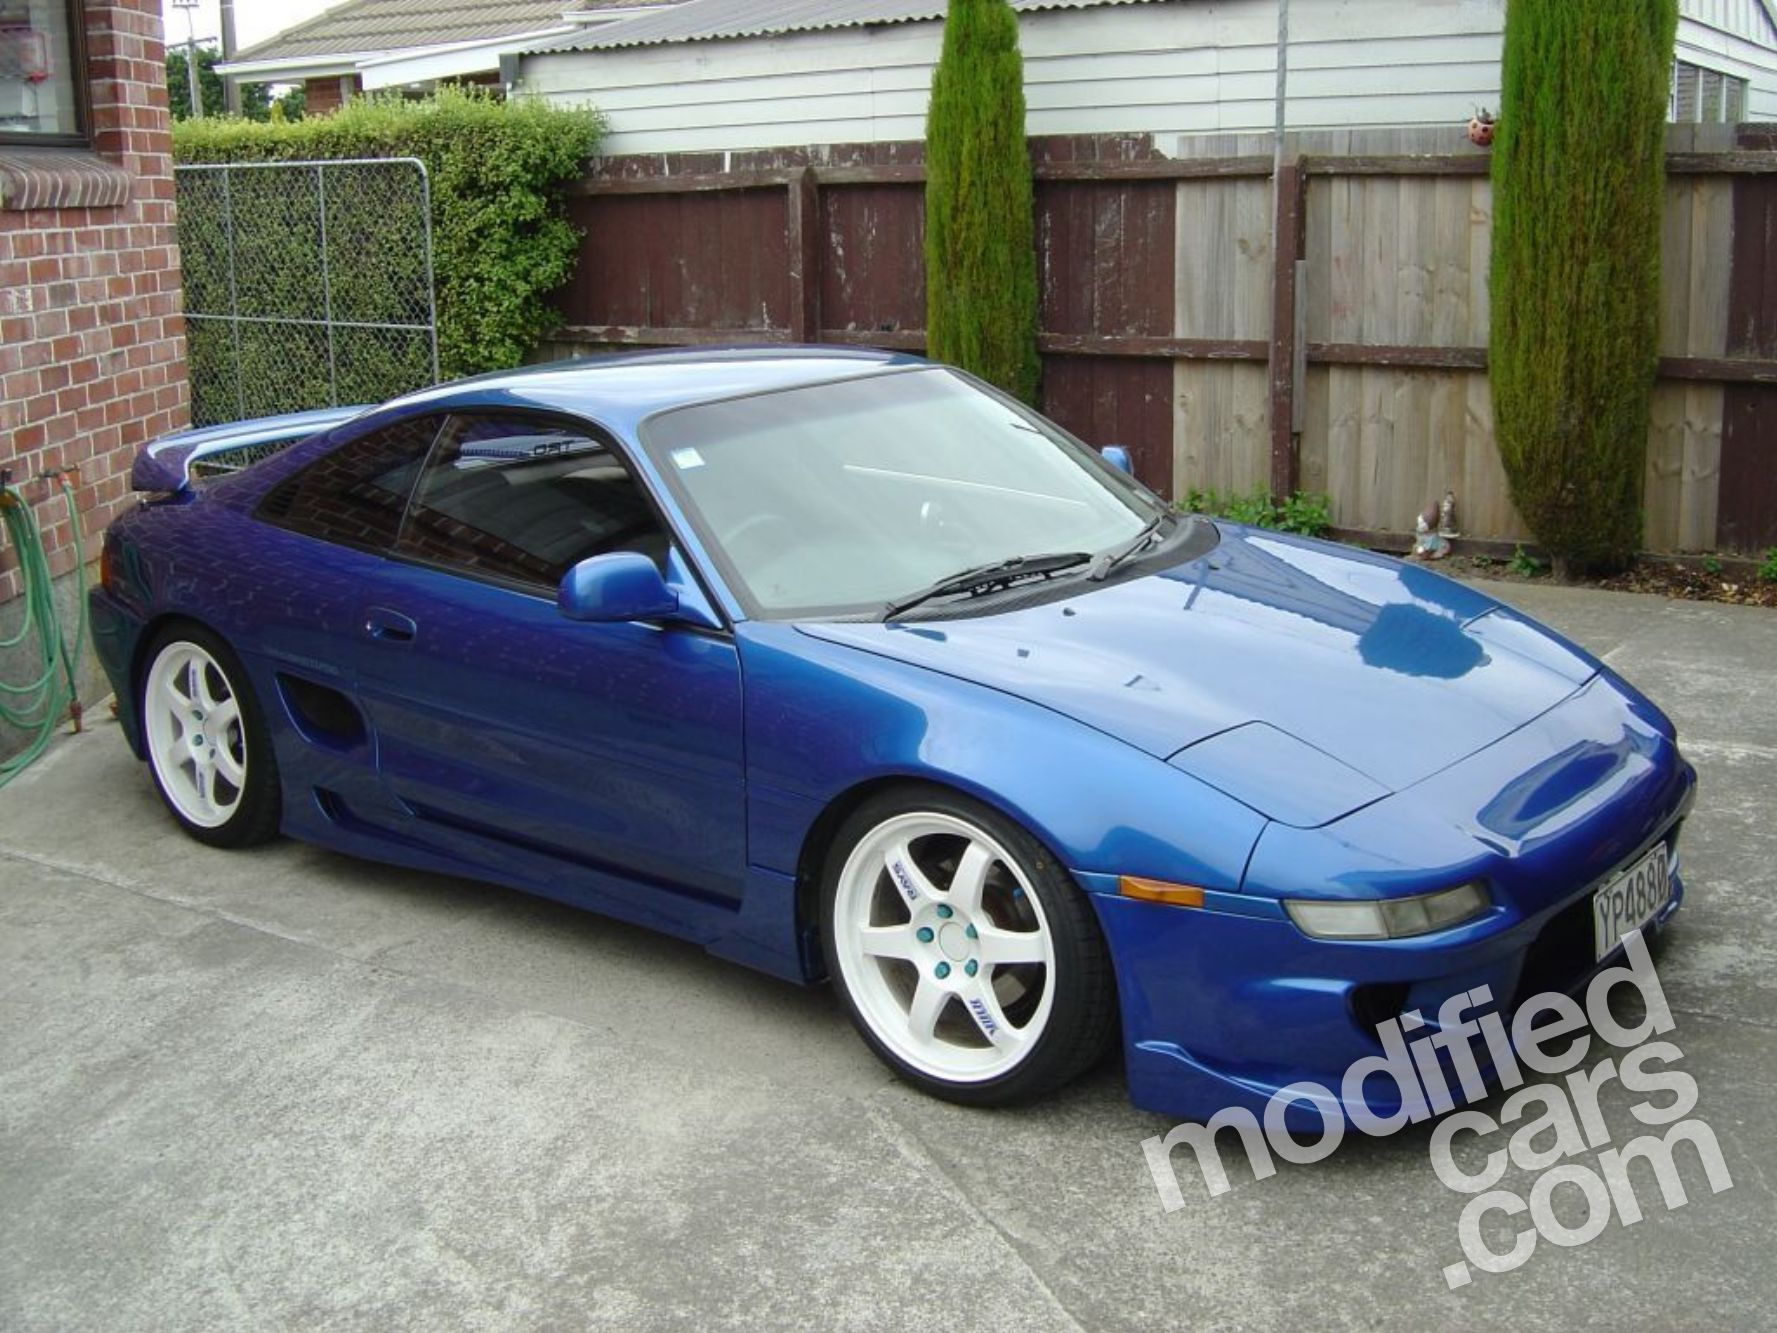 Alfa img showing gt mr2 stance background - Modified Toyota Mr2 Gt S 1996 Picture Modifiedcars Com